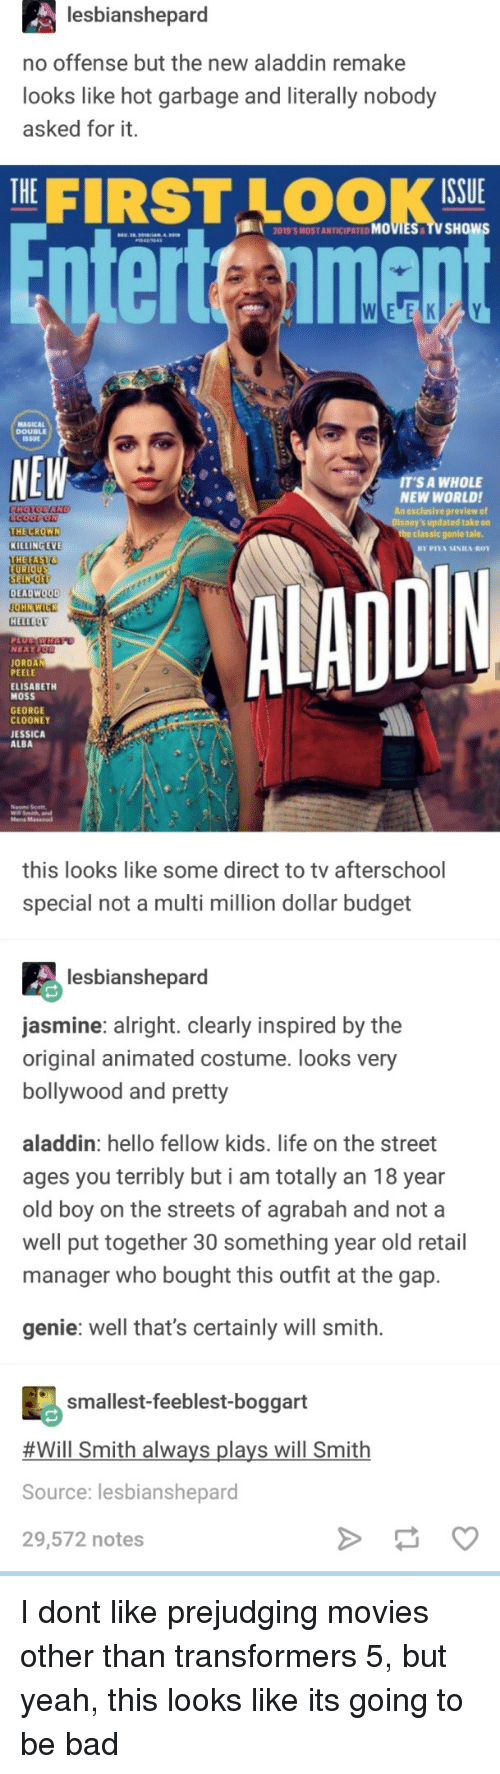 alba: lesbianshepard  no offense but the new aladdin remake  looks like hot garbage and literally nobody  asked for it.  THE|  FIRST LOOK  ISSUE  2019'S MOST ANTICIPATED MOVIES TV SHOw  nterteimen  MAGICAL  DOUBLEE  SSUE  NEW  T'S A WHOLE  NEW WORLDI  An exclusive preview of  s updated take on  THE CROWN  KILLING EVE  THETAST  the classic genle tale.  DIN  EU  SPIN-O  DEADWOOD  HELLBOY  NEXT  JORDAN  PEELE  ELISABETH  MOSS  GEORGE  CLOONEY  JESSICA  ALBA  Mena Massoud  this looks like some direct to tv afterschool  special not a multi million dollar budget  lesbianshepard  asmine: alright. clearly inspired by the  original animated costume. looks very  bollywood and pretty  aladdin: hello fellow kids. life on the street  ages you terribly but i am totally an 18 year  old boy on the streets of agrabah and not a  well put together 30 something year old retail  manager who bought this outfit at the gap.  genie: well that's certainly will smith.  smallest-feeblest-boggart  #Will Smith always plays will Smith  Source: lesbianshepard  29,572 notes I dont like prejudging movies other than transformers 5, but yeah, this looks like its going to be bad